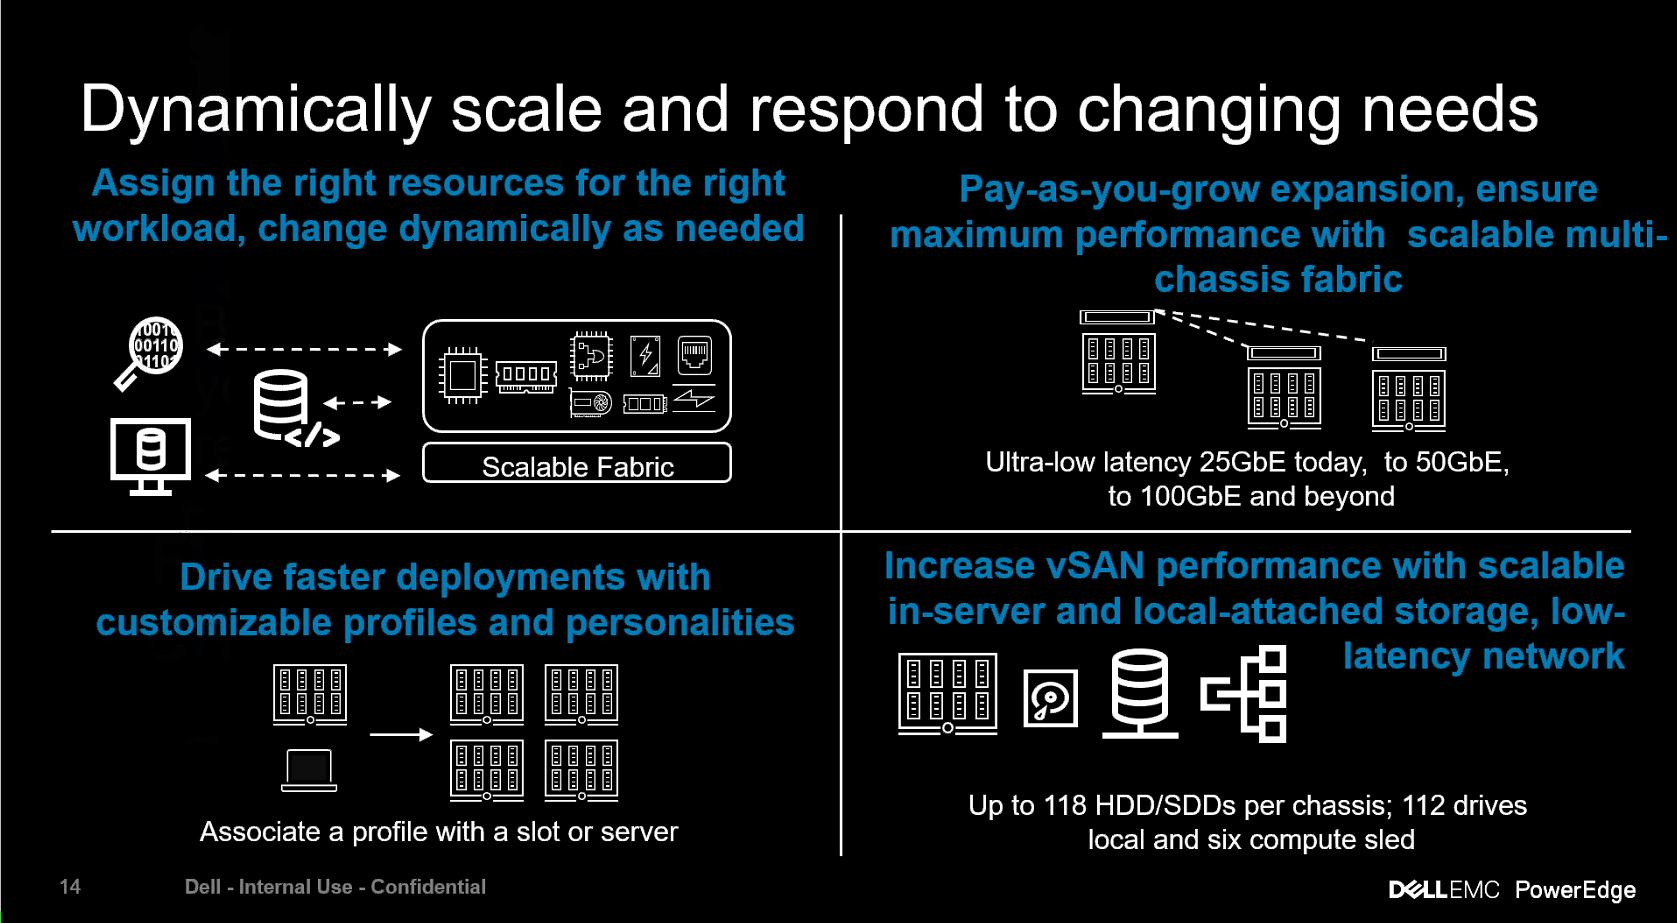 Dell EMC PowerEdge MX Dynamically Scale To Changing Needs